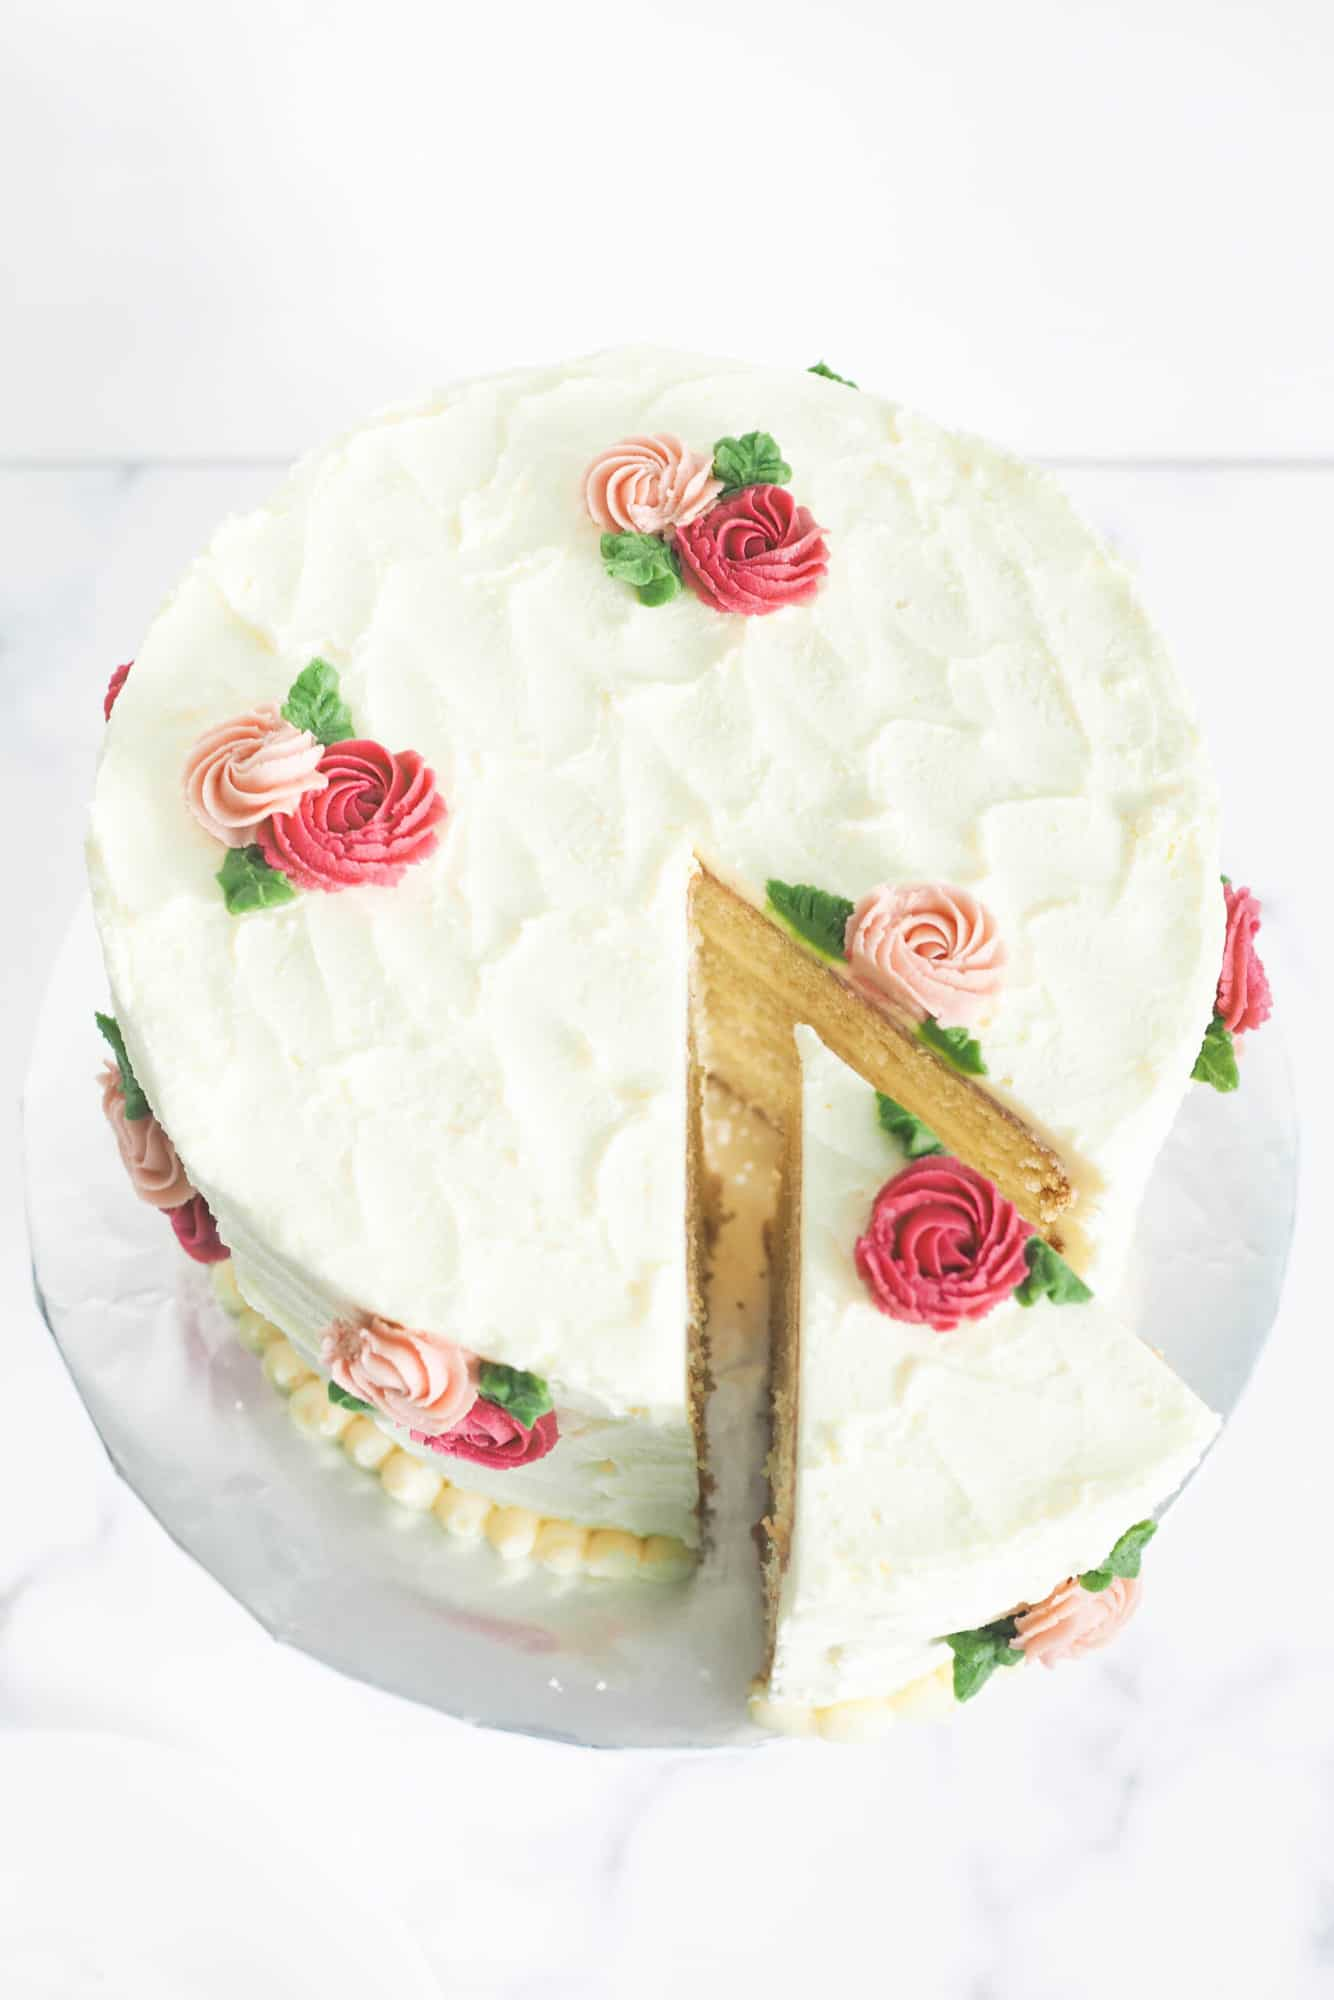 A round cake covered in white buttercream with pink and maroon rosettes and green leaves. A slice of the cake is cut out.